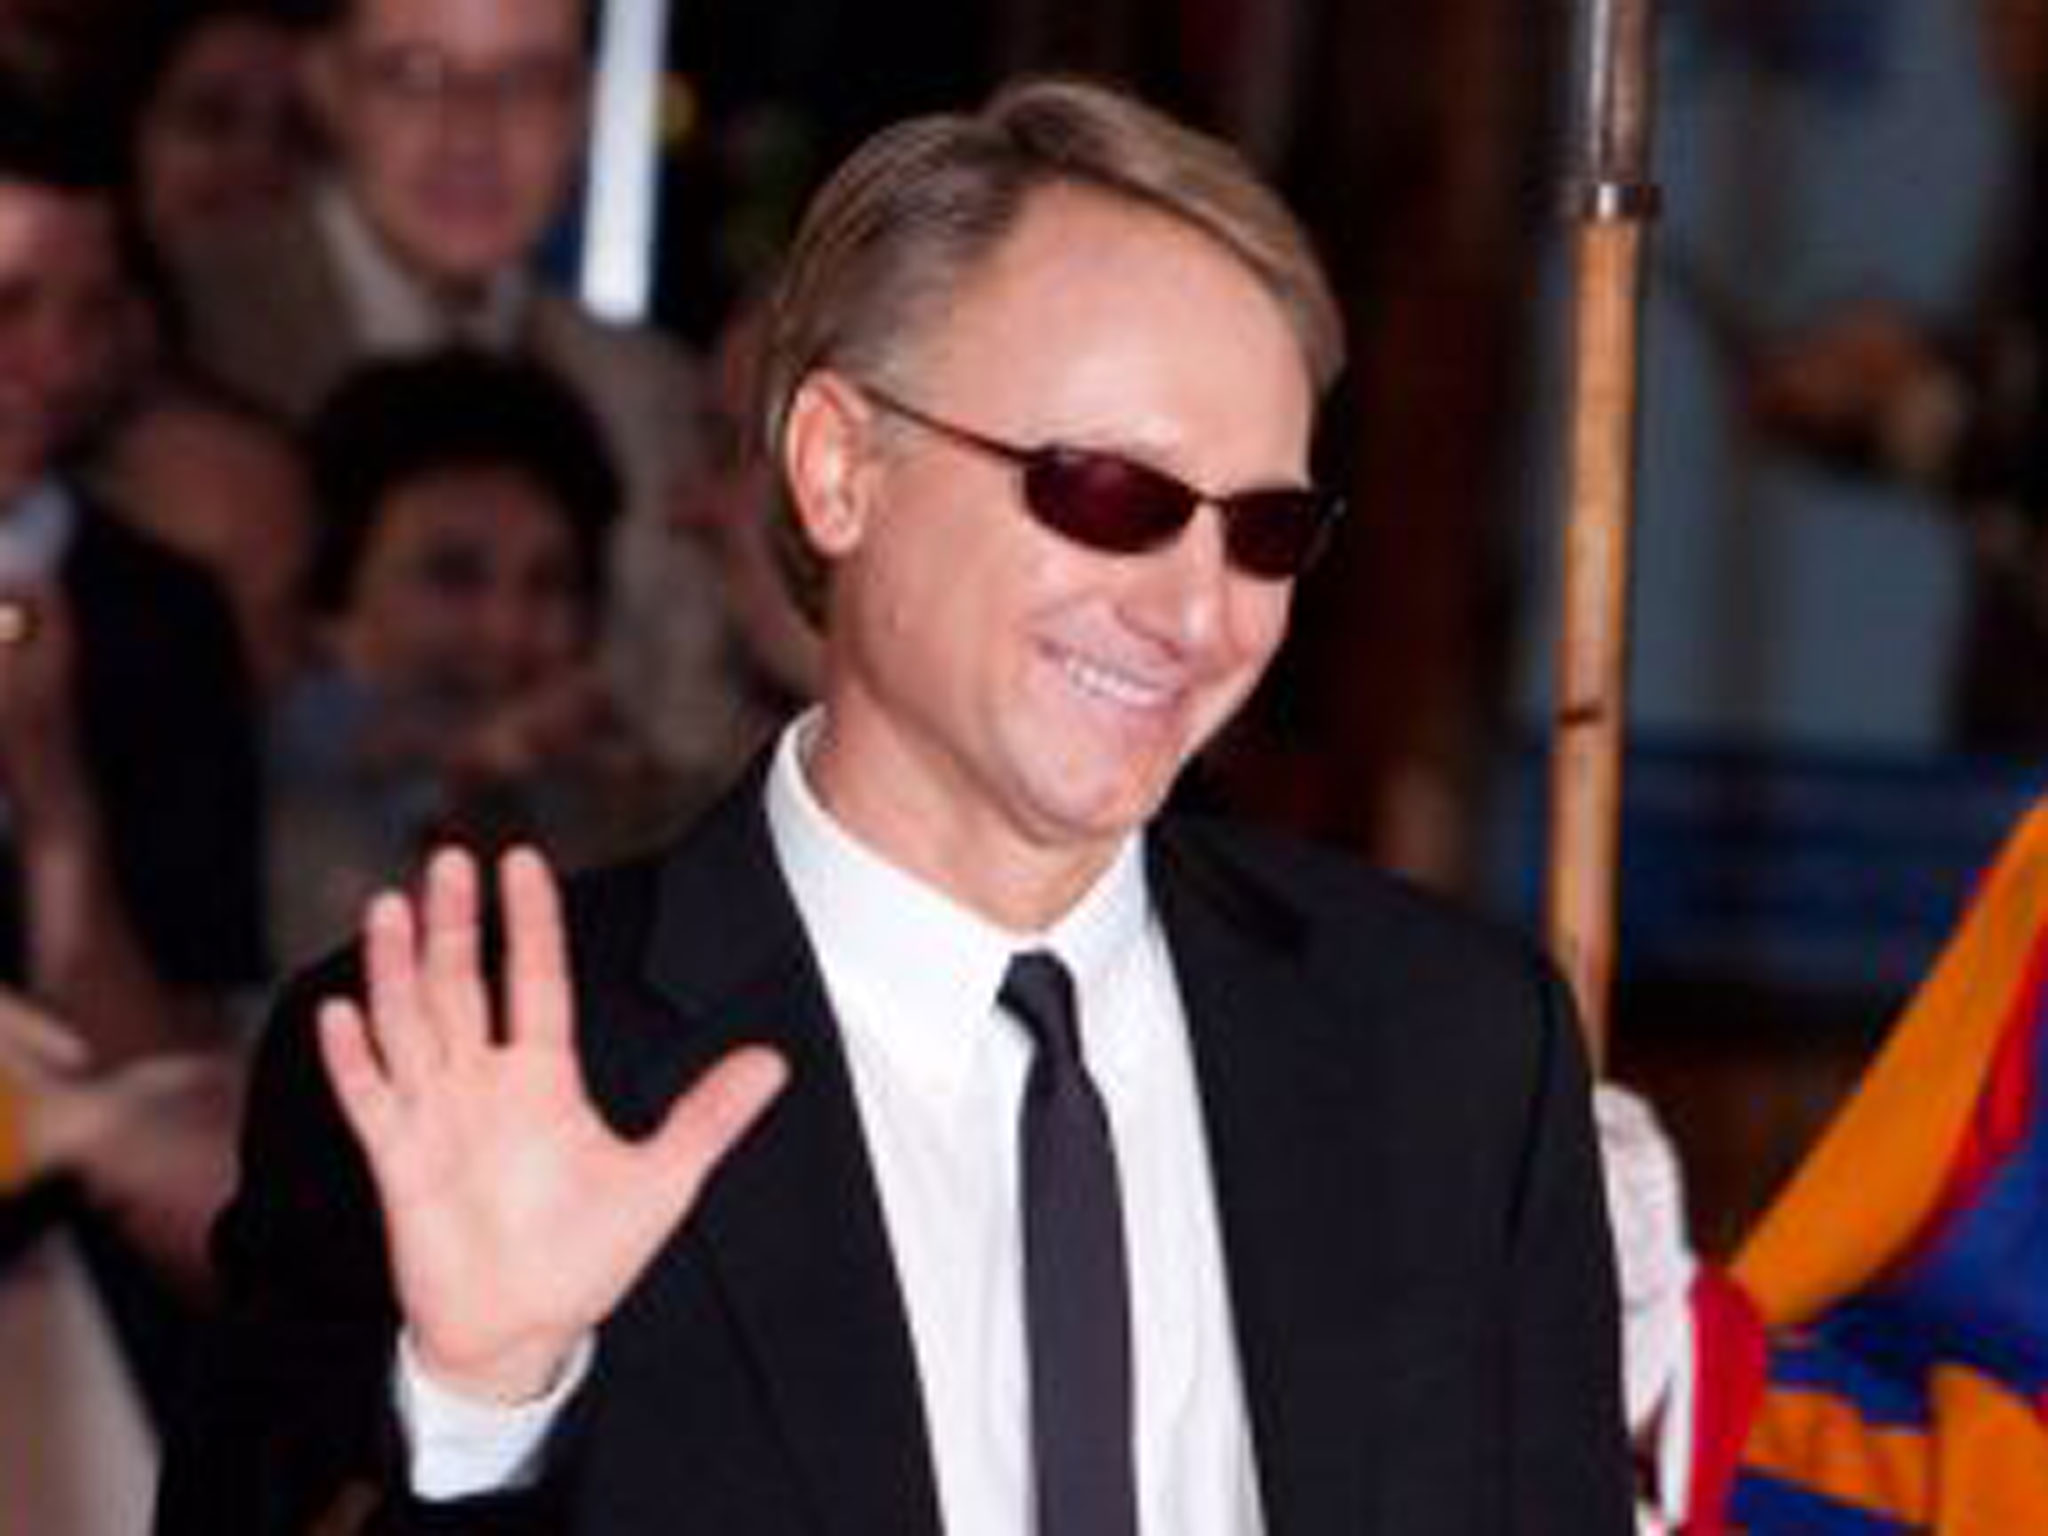 Page 3 Profile: Dan Brown, Author of new novel, 'Inferno' - i - The Independent